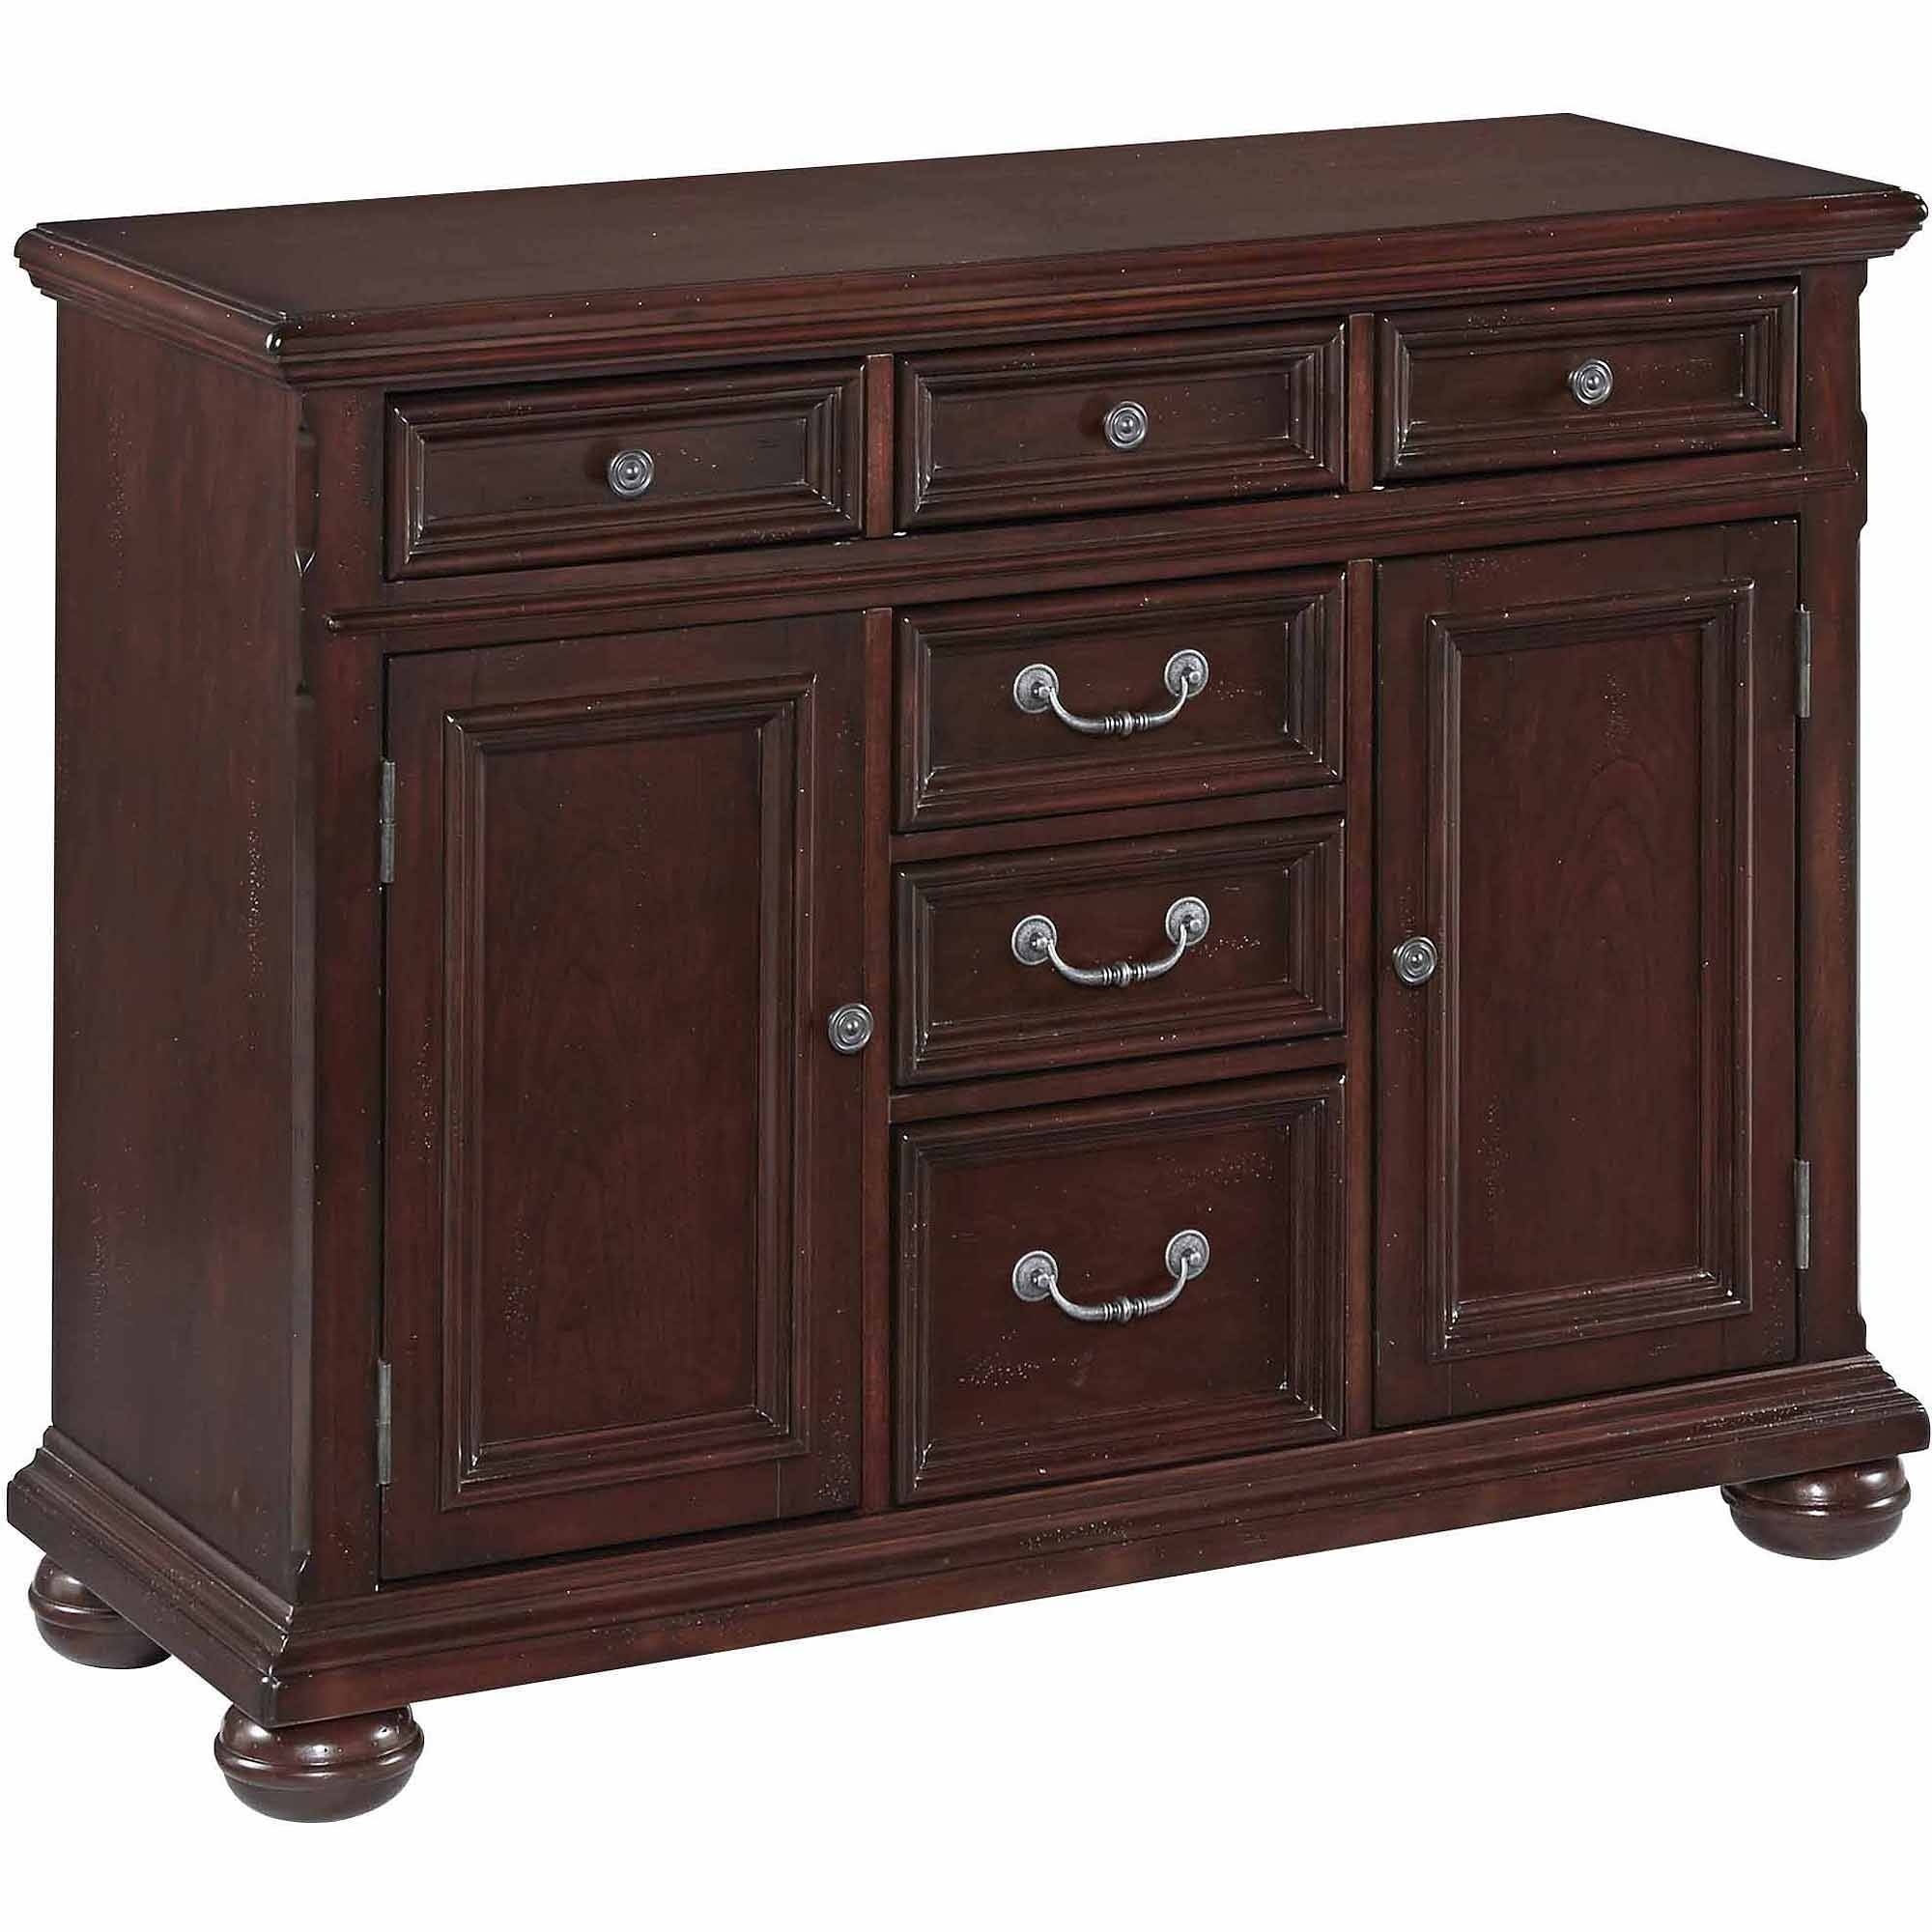 China Cabinet & Buffet Furniture : Kitchen & Dining Furniture throughout 12 Inch Deep Sideboards (Image 8 of 30)